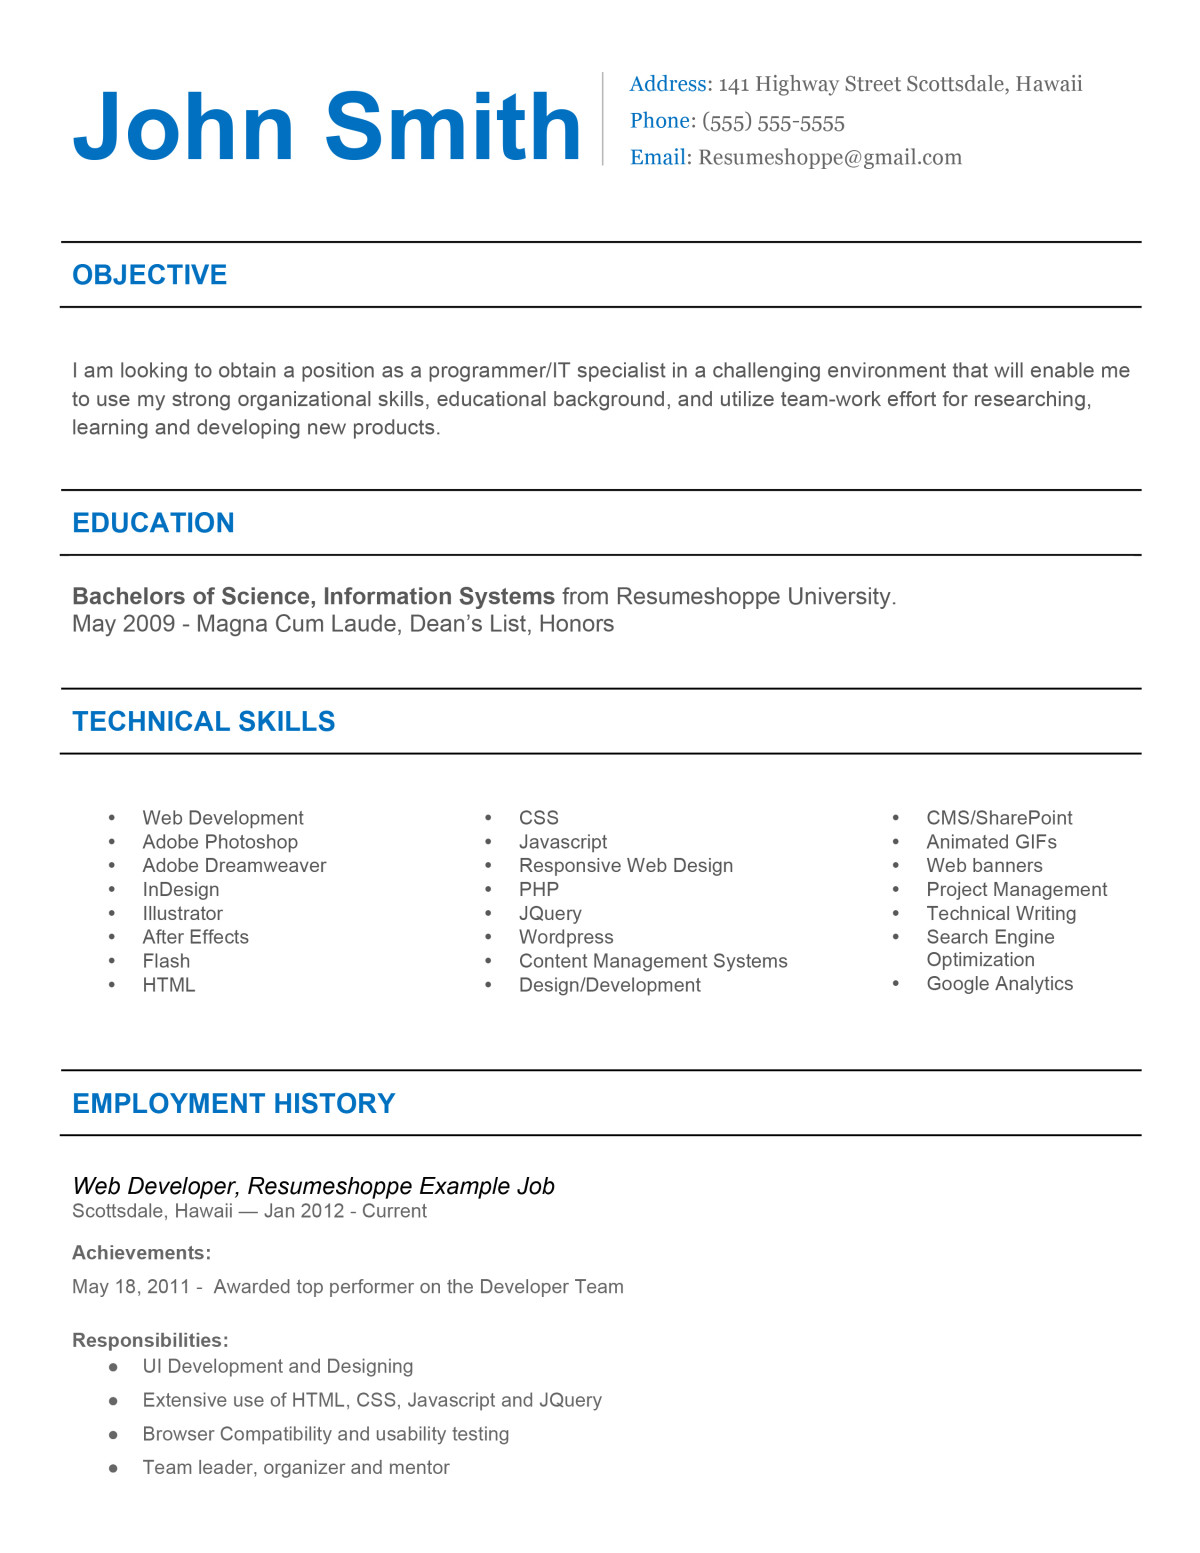 The John Resume 2  Simple but effective resume